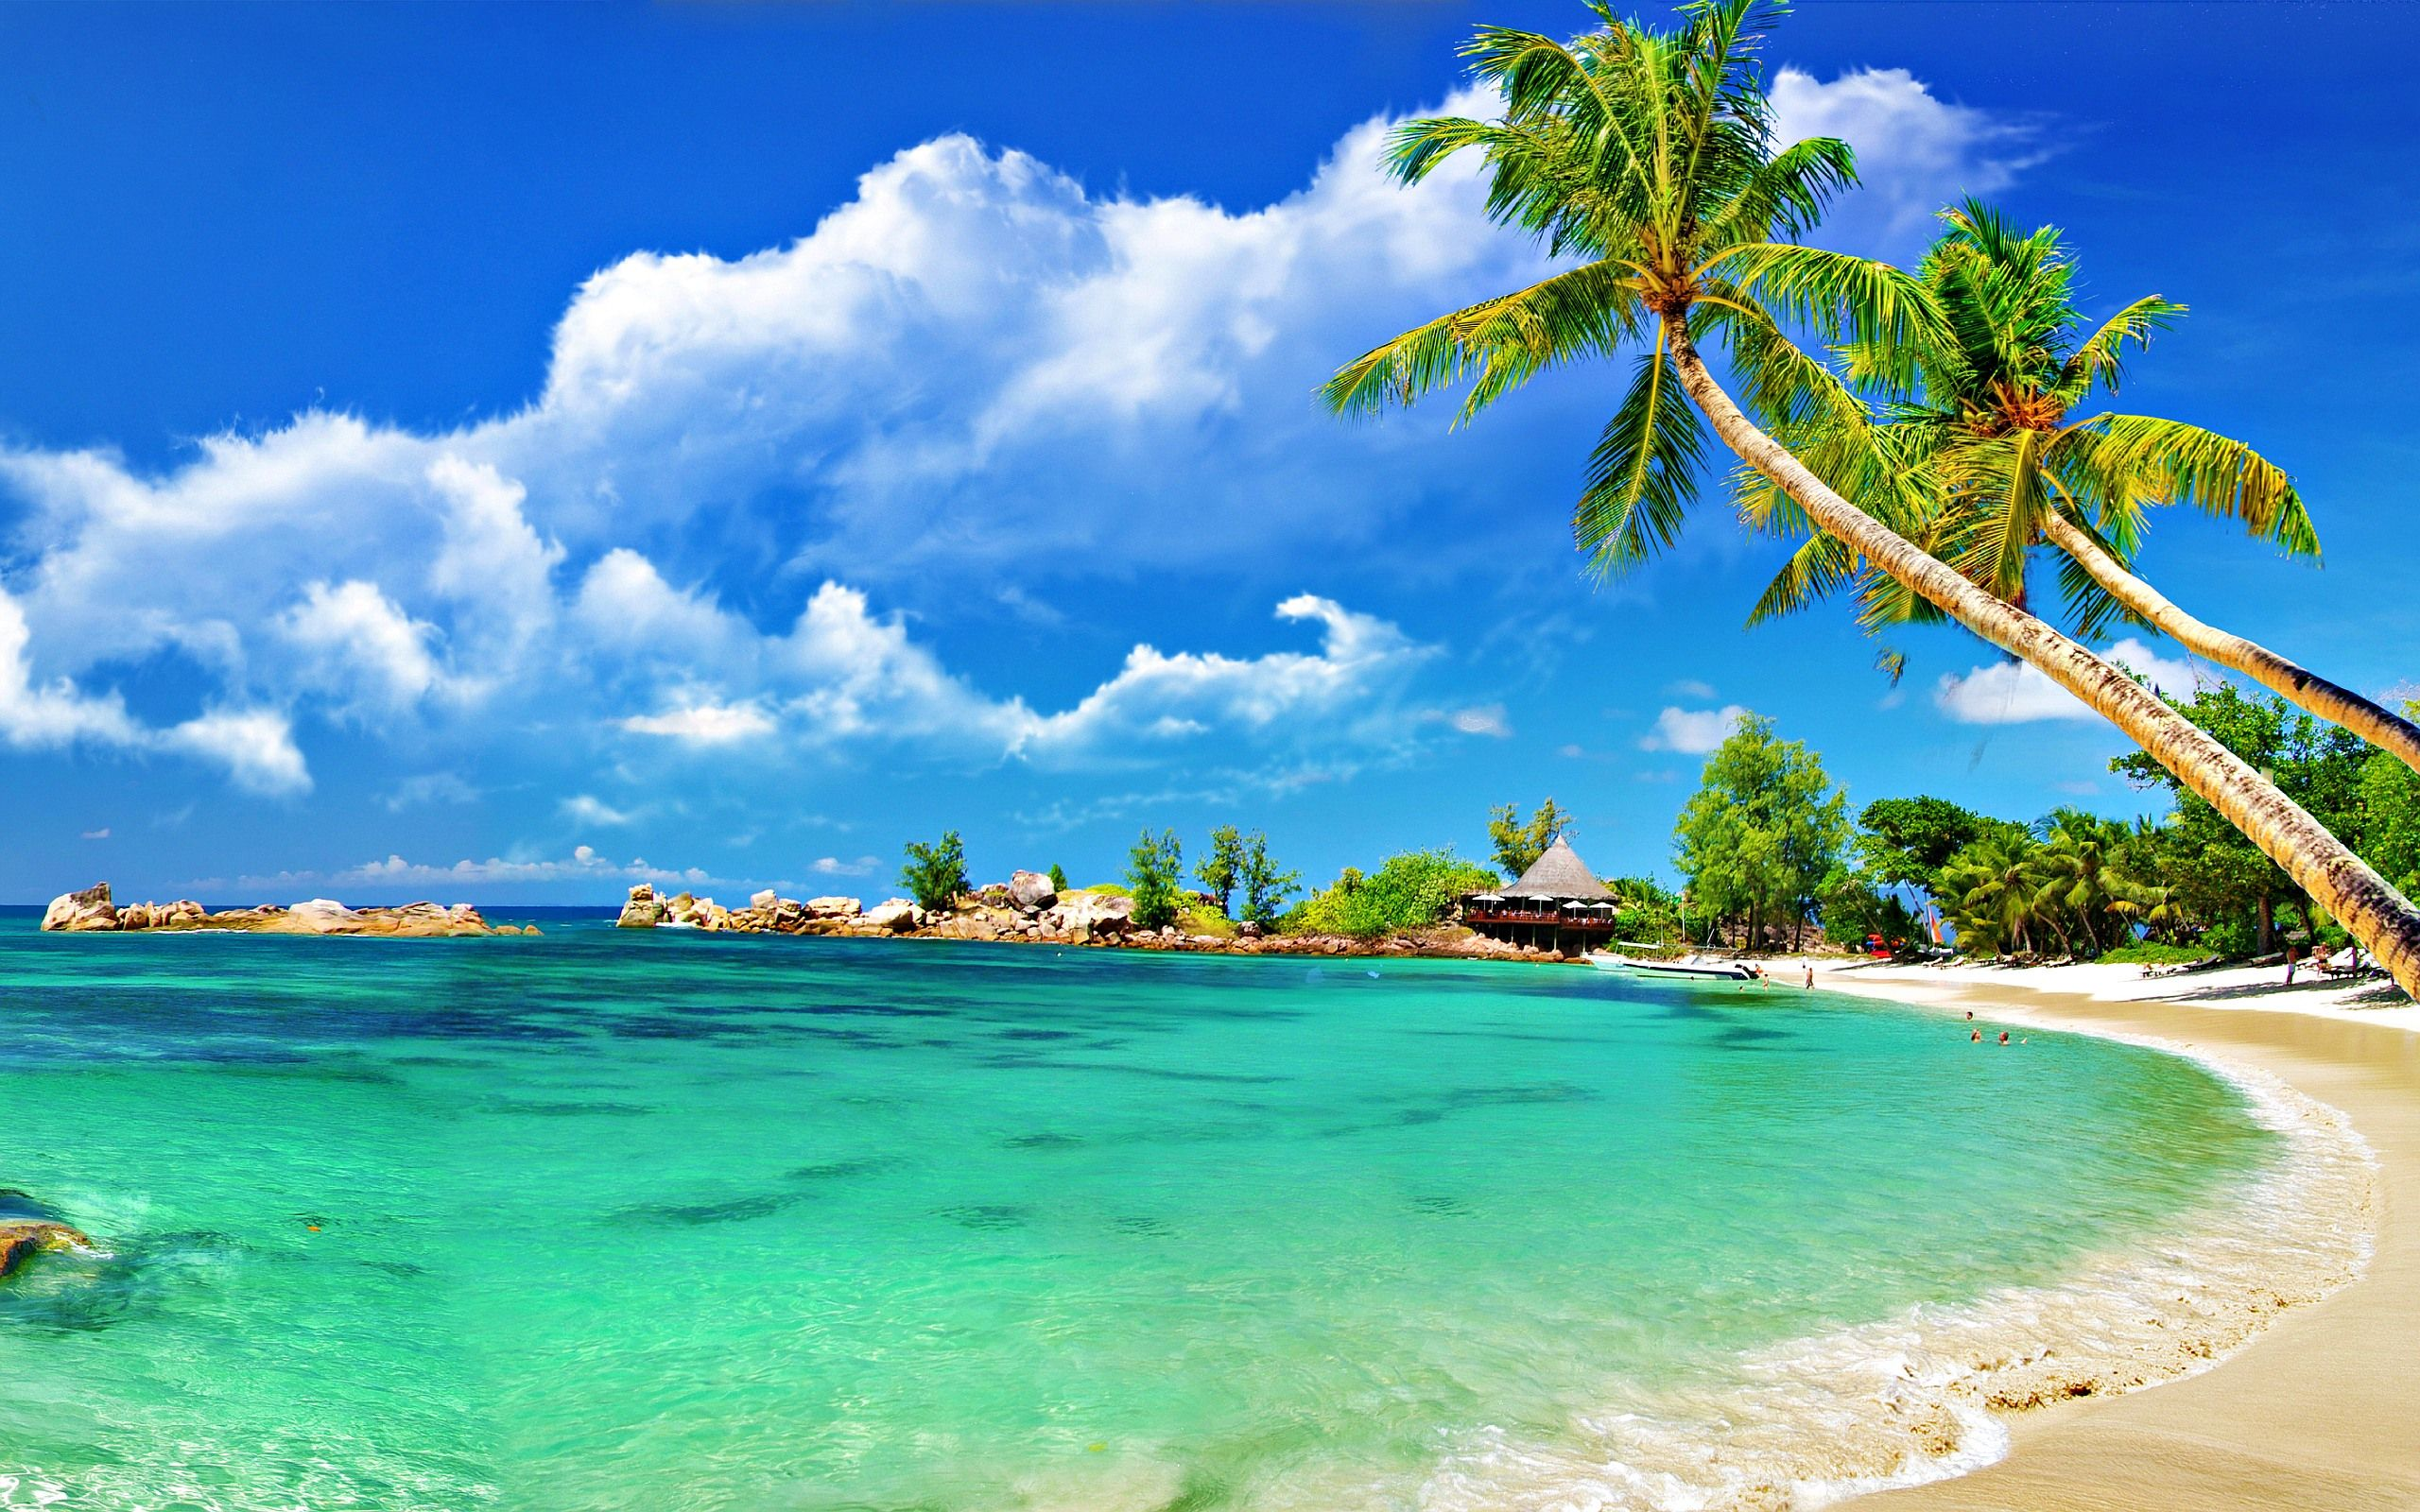 50 amazing beach wallpapers free to download | beach wallpaper